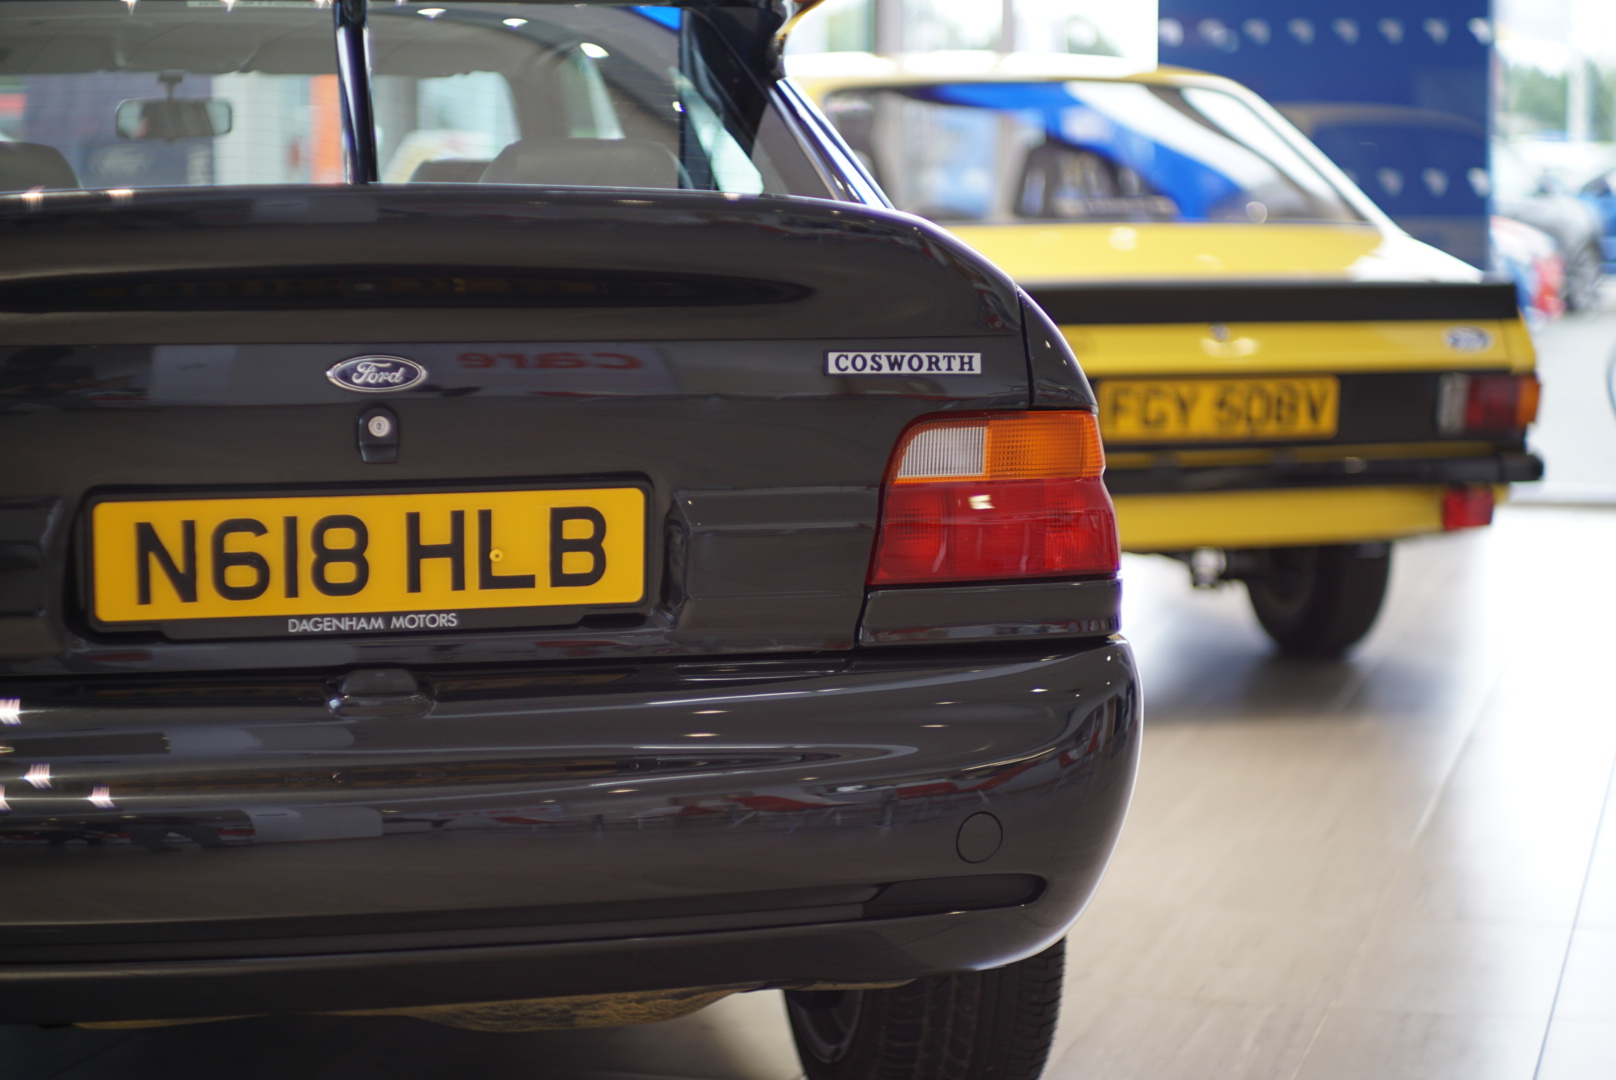 Rear of the Ford Escort RS Cosworth